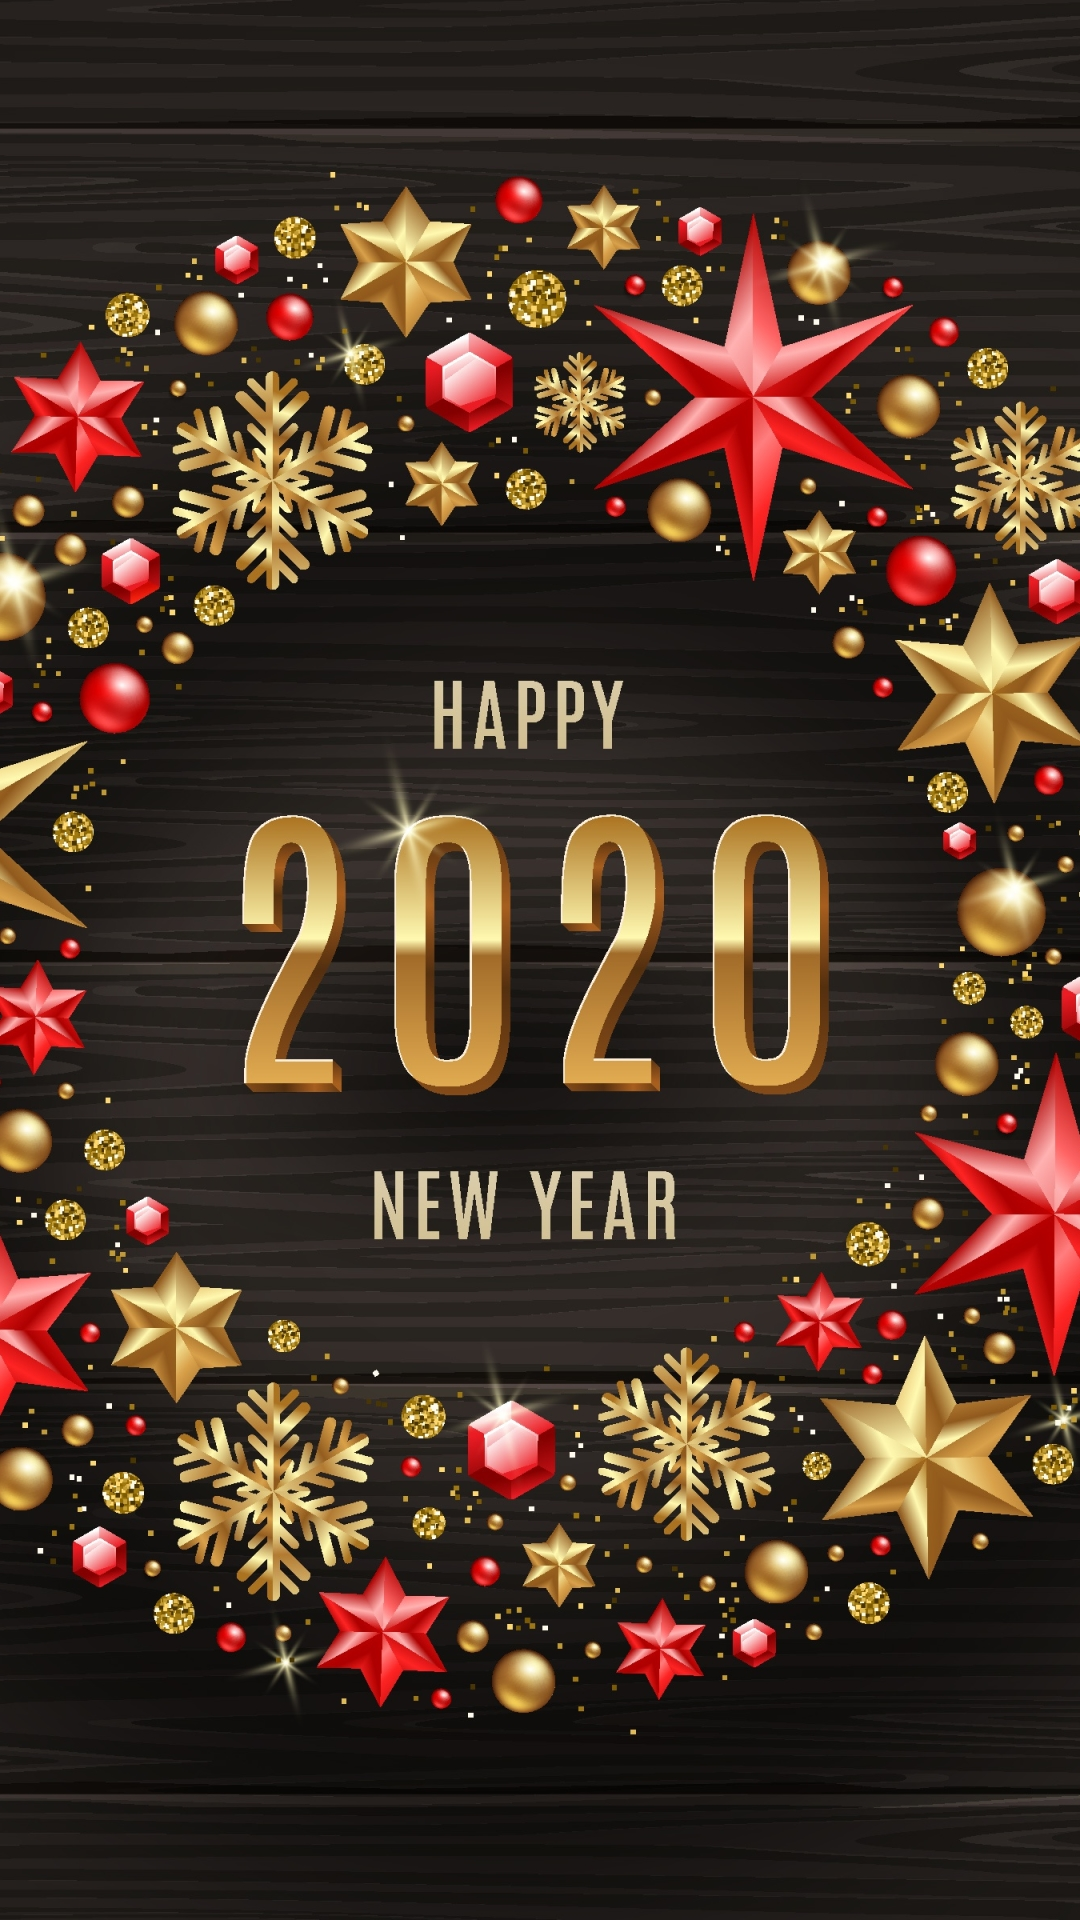 Happy New Year 2020 Wishes Wallpaper